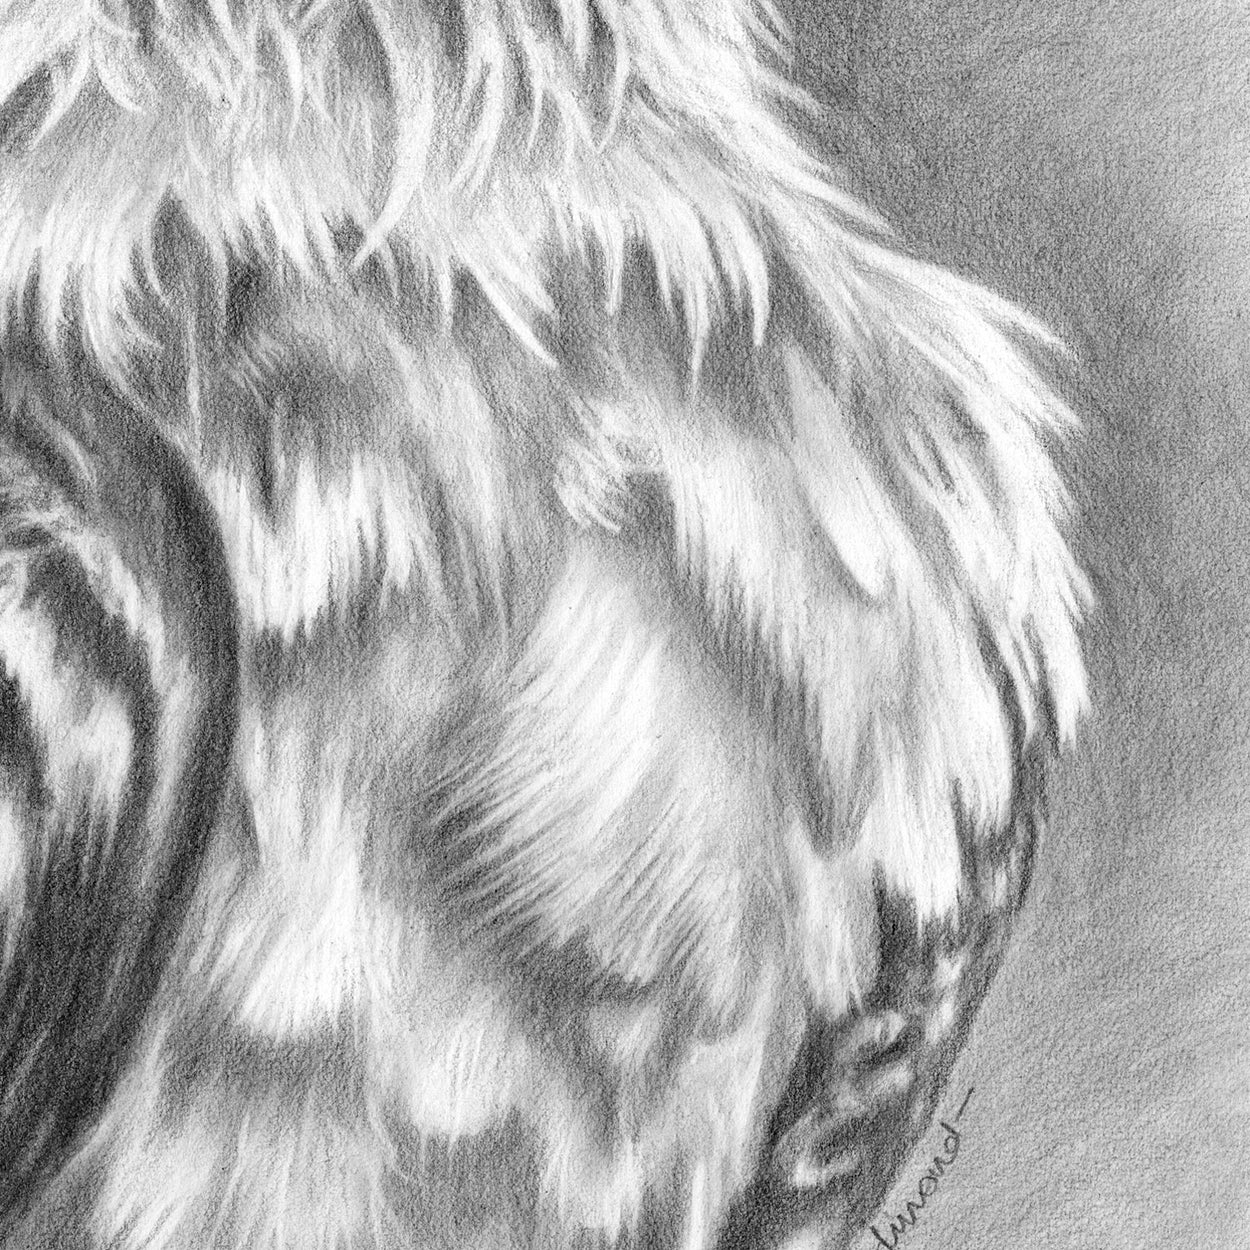 Bearded Vulture Drawing Close-up 3 - The Thriving Wild - Jill Dimond